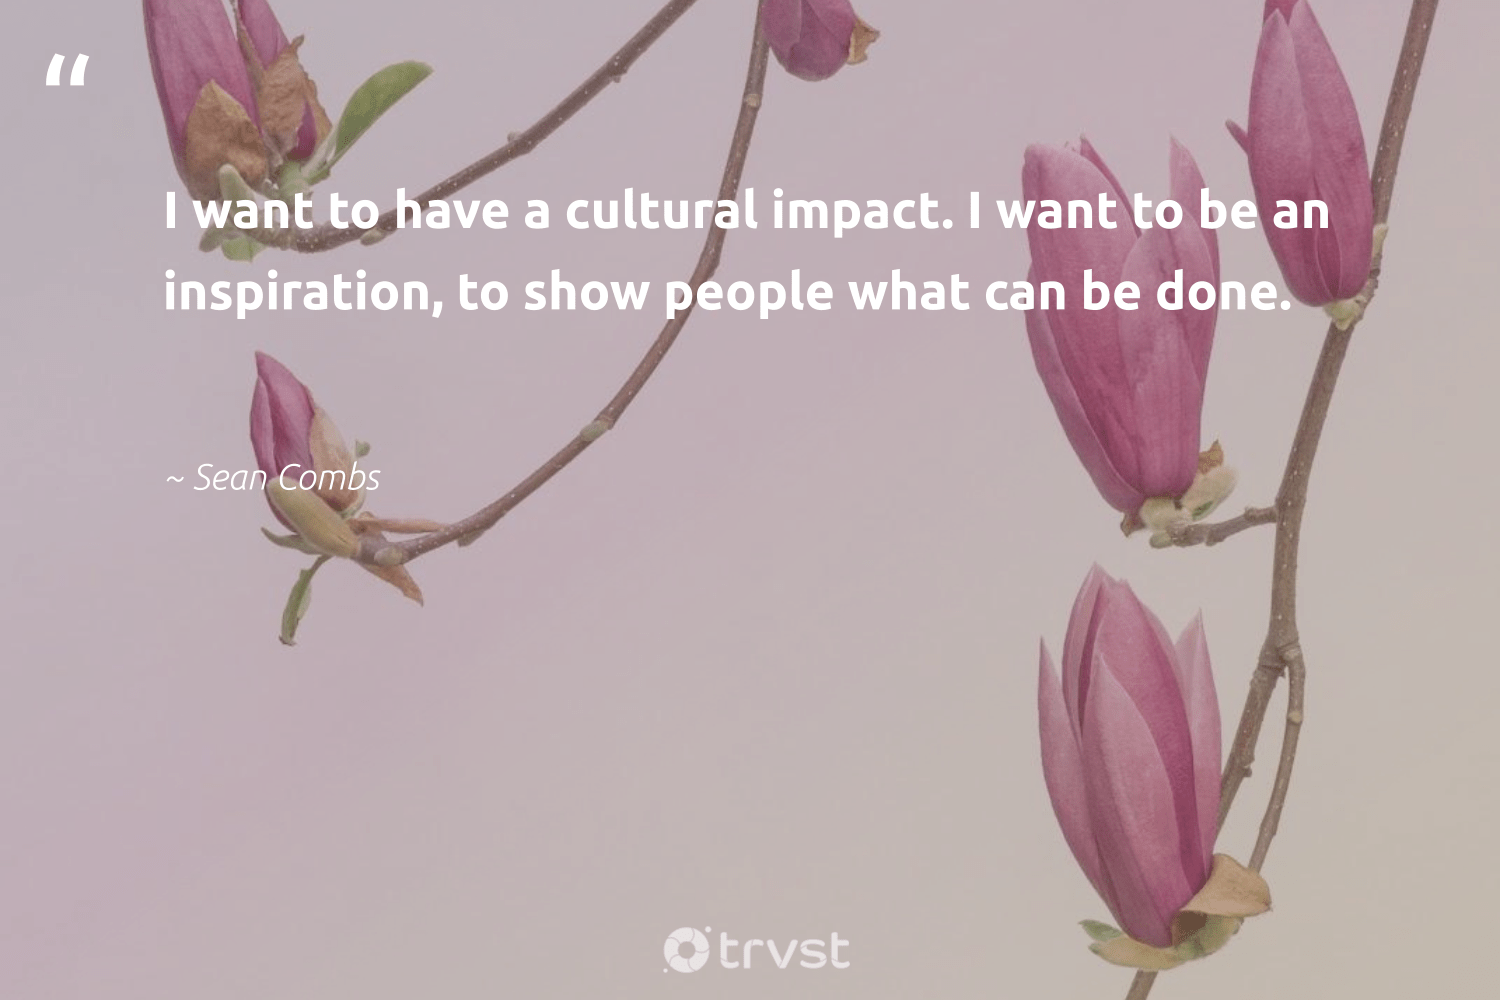 """""""I want to have a cultural impact. I want to be an inspiration, to show people what can be done.""""  - Sean Combs #trvst #quotes #impact #socialchange #dotherightthing #betterplanet #planetearthfirst #giveback #changetheworld #ethicalbusiness #takeaction #weareallone"""